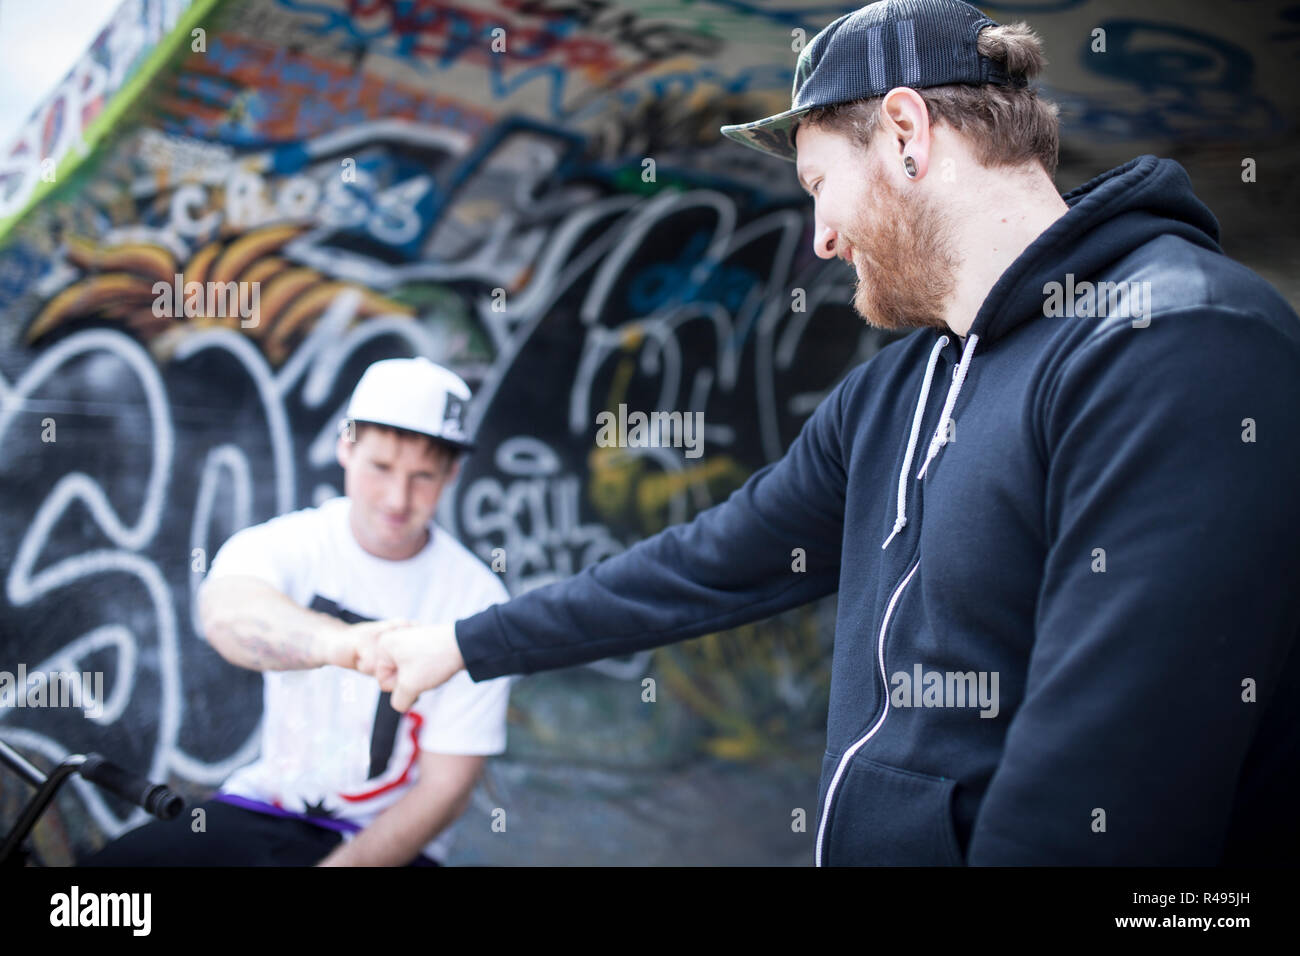 Two buddies bmxing and giving eachother a handshake in concrete ramps Stock Photo